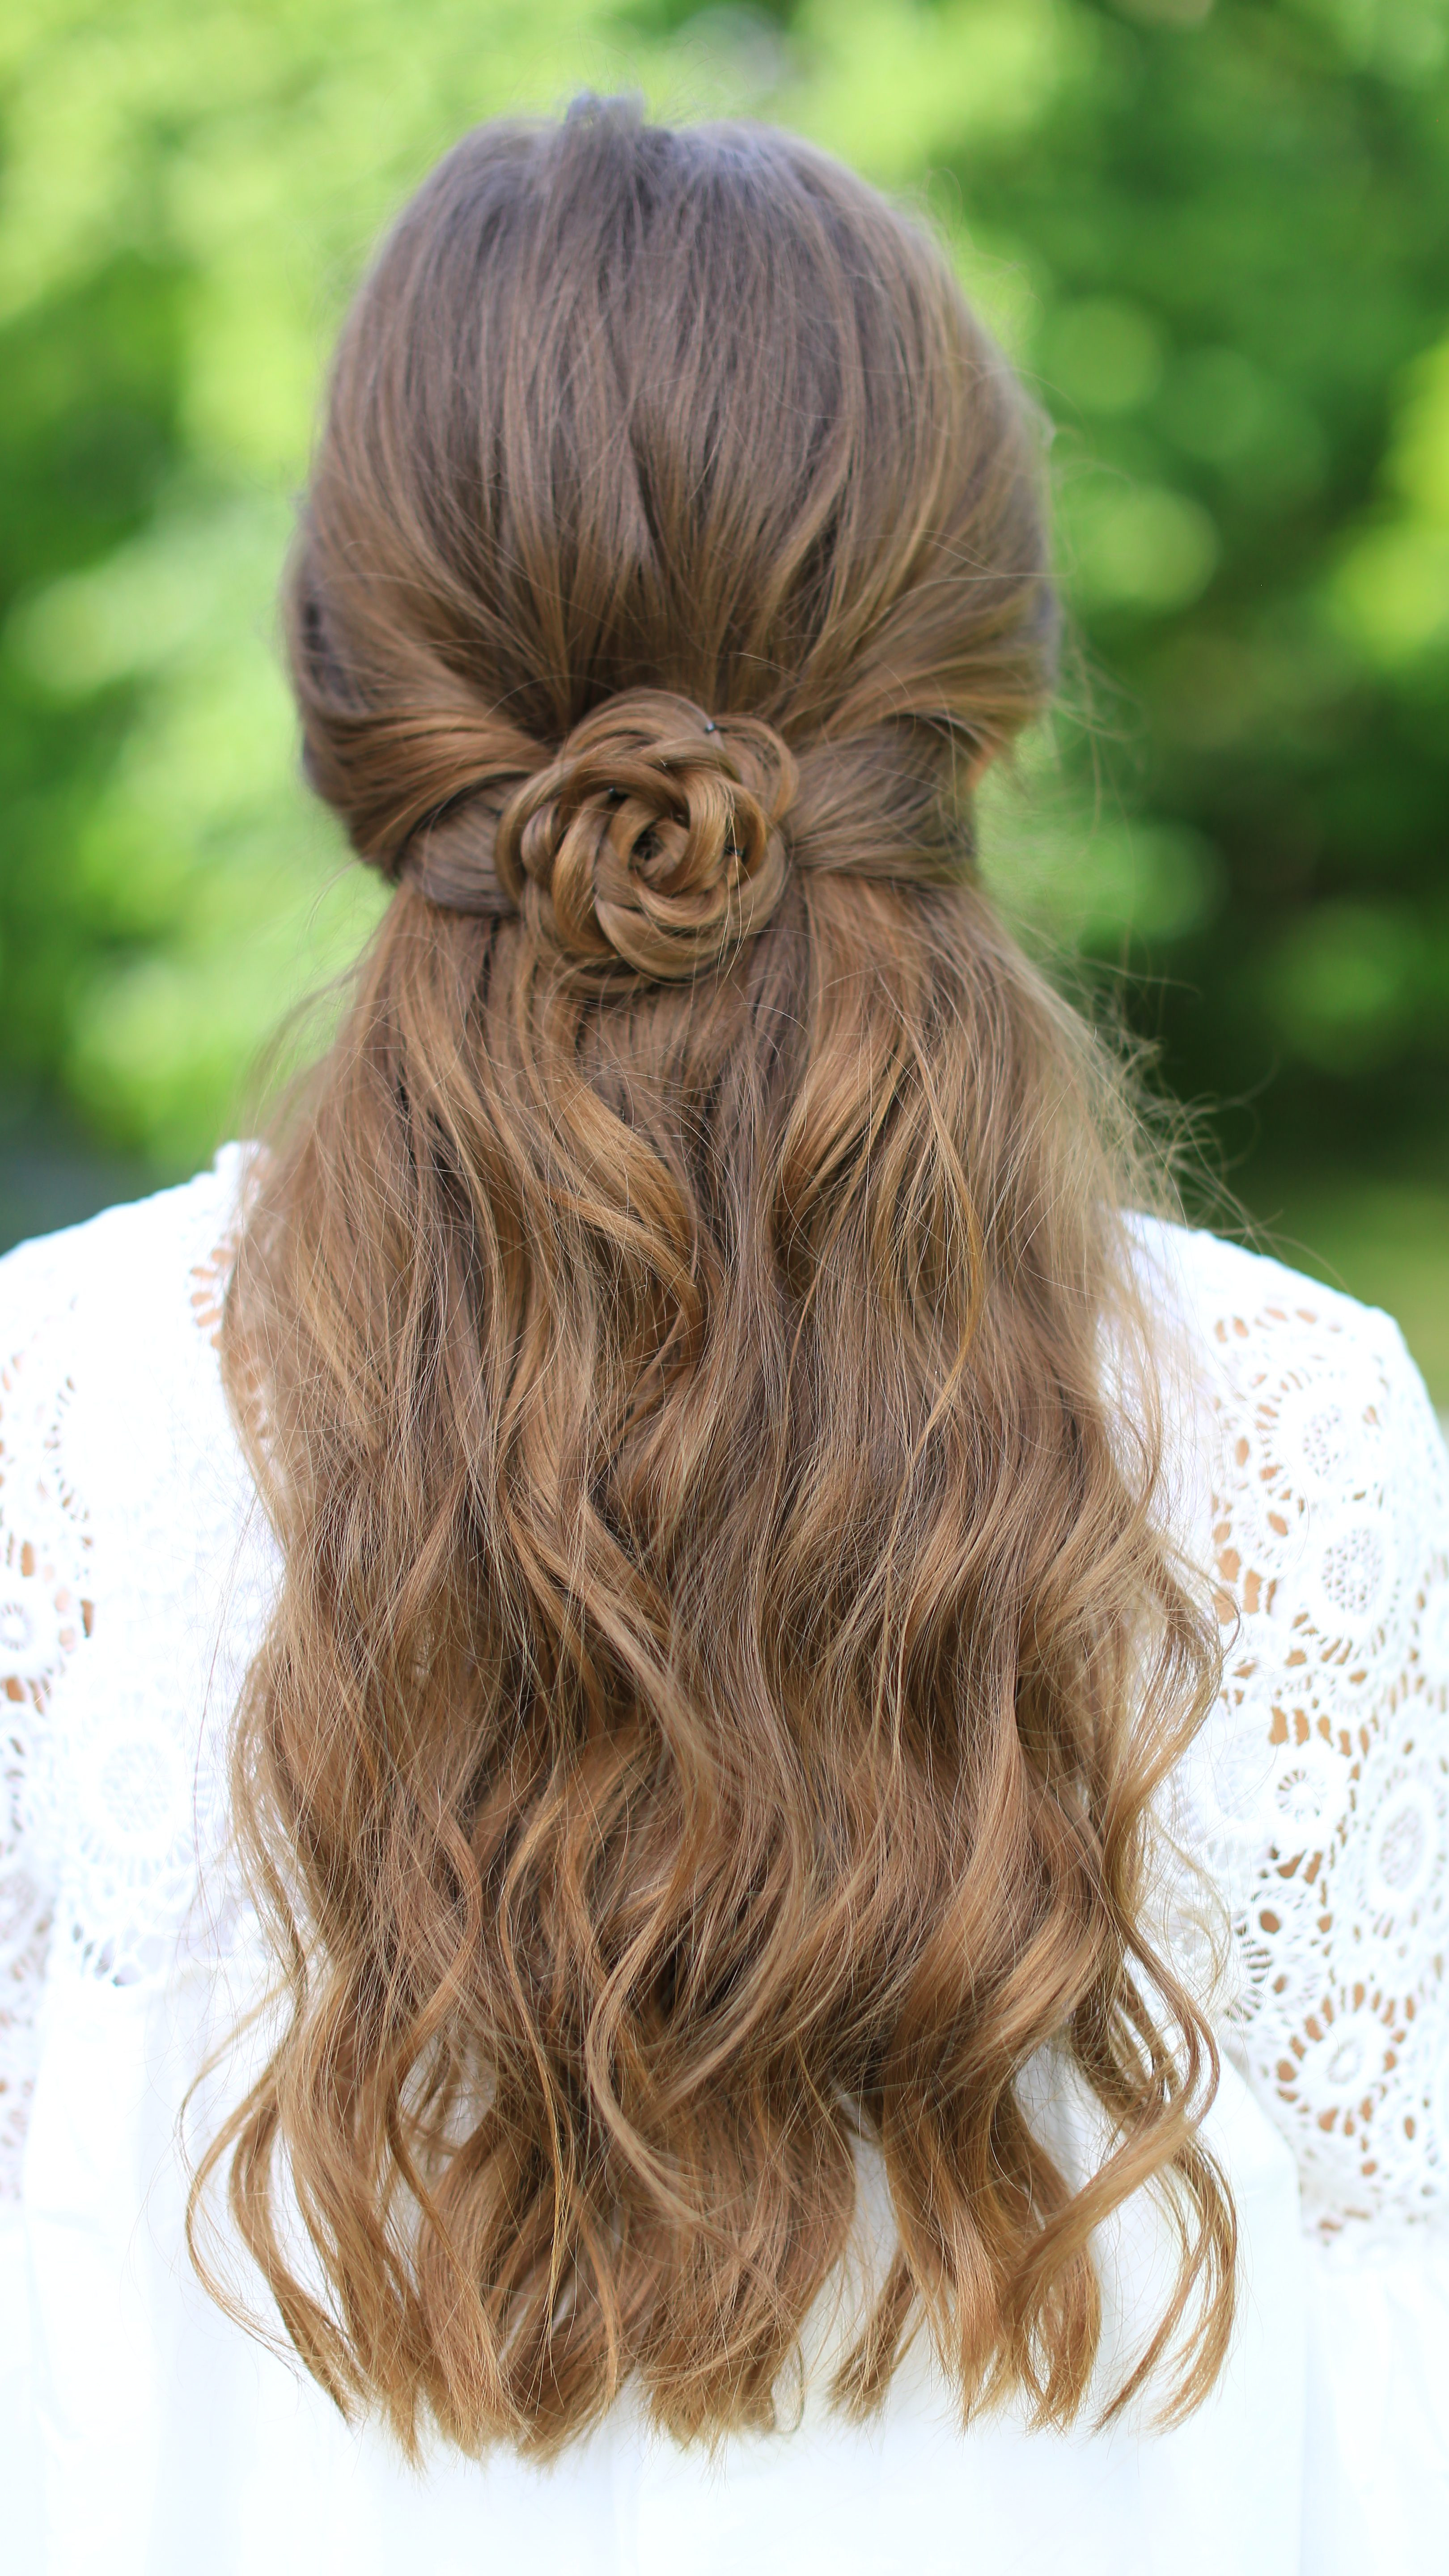 Best ideas about Girls Haircuts . Save or Pin Rosette Tieback Now.